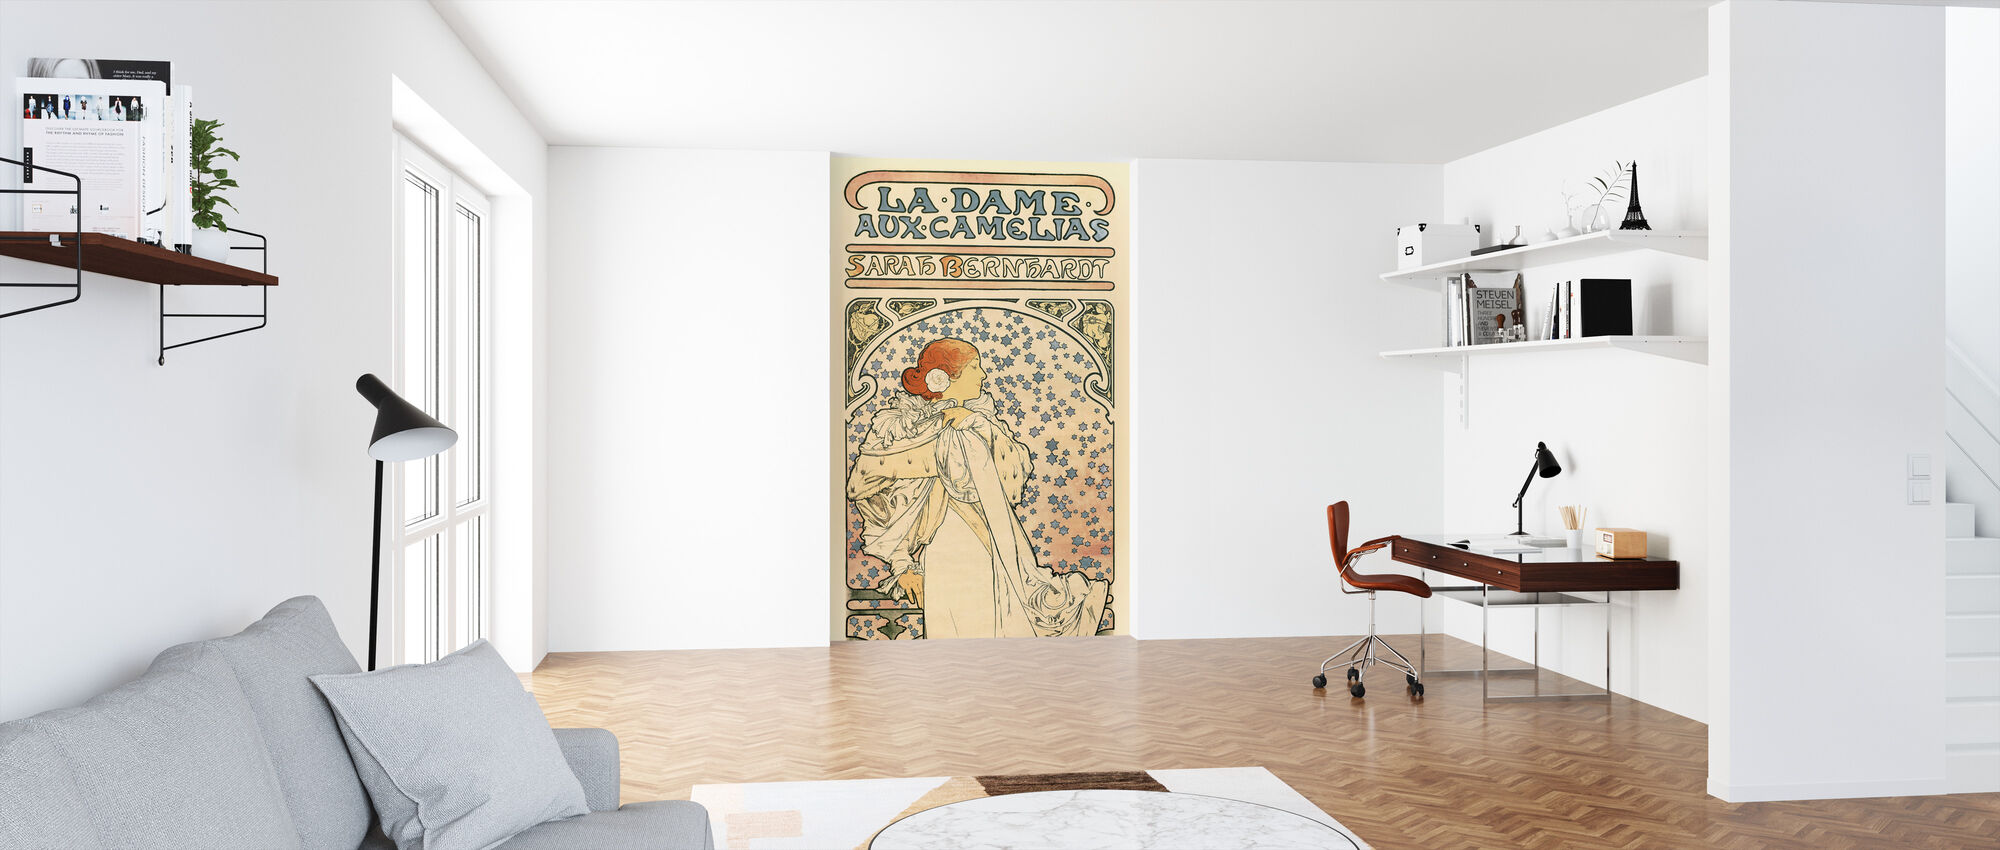 Alphonse Mucha - The Lady of the Camellias - Wallpaper - Office